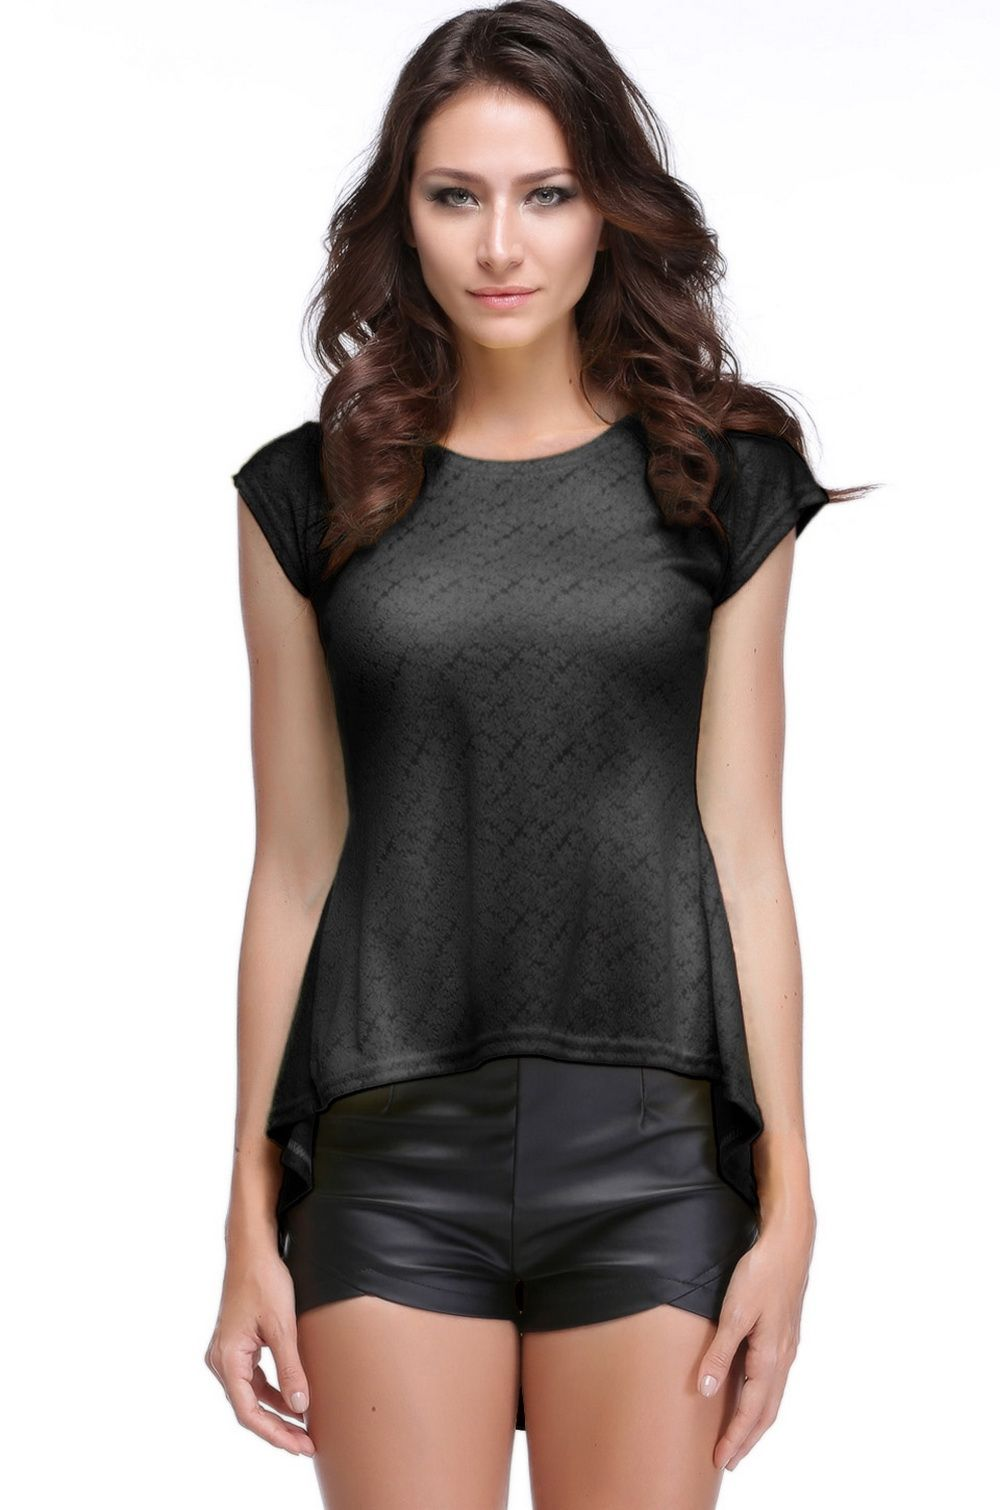 Lace Peplum Tops for Women